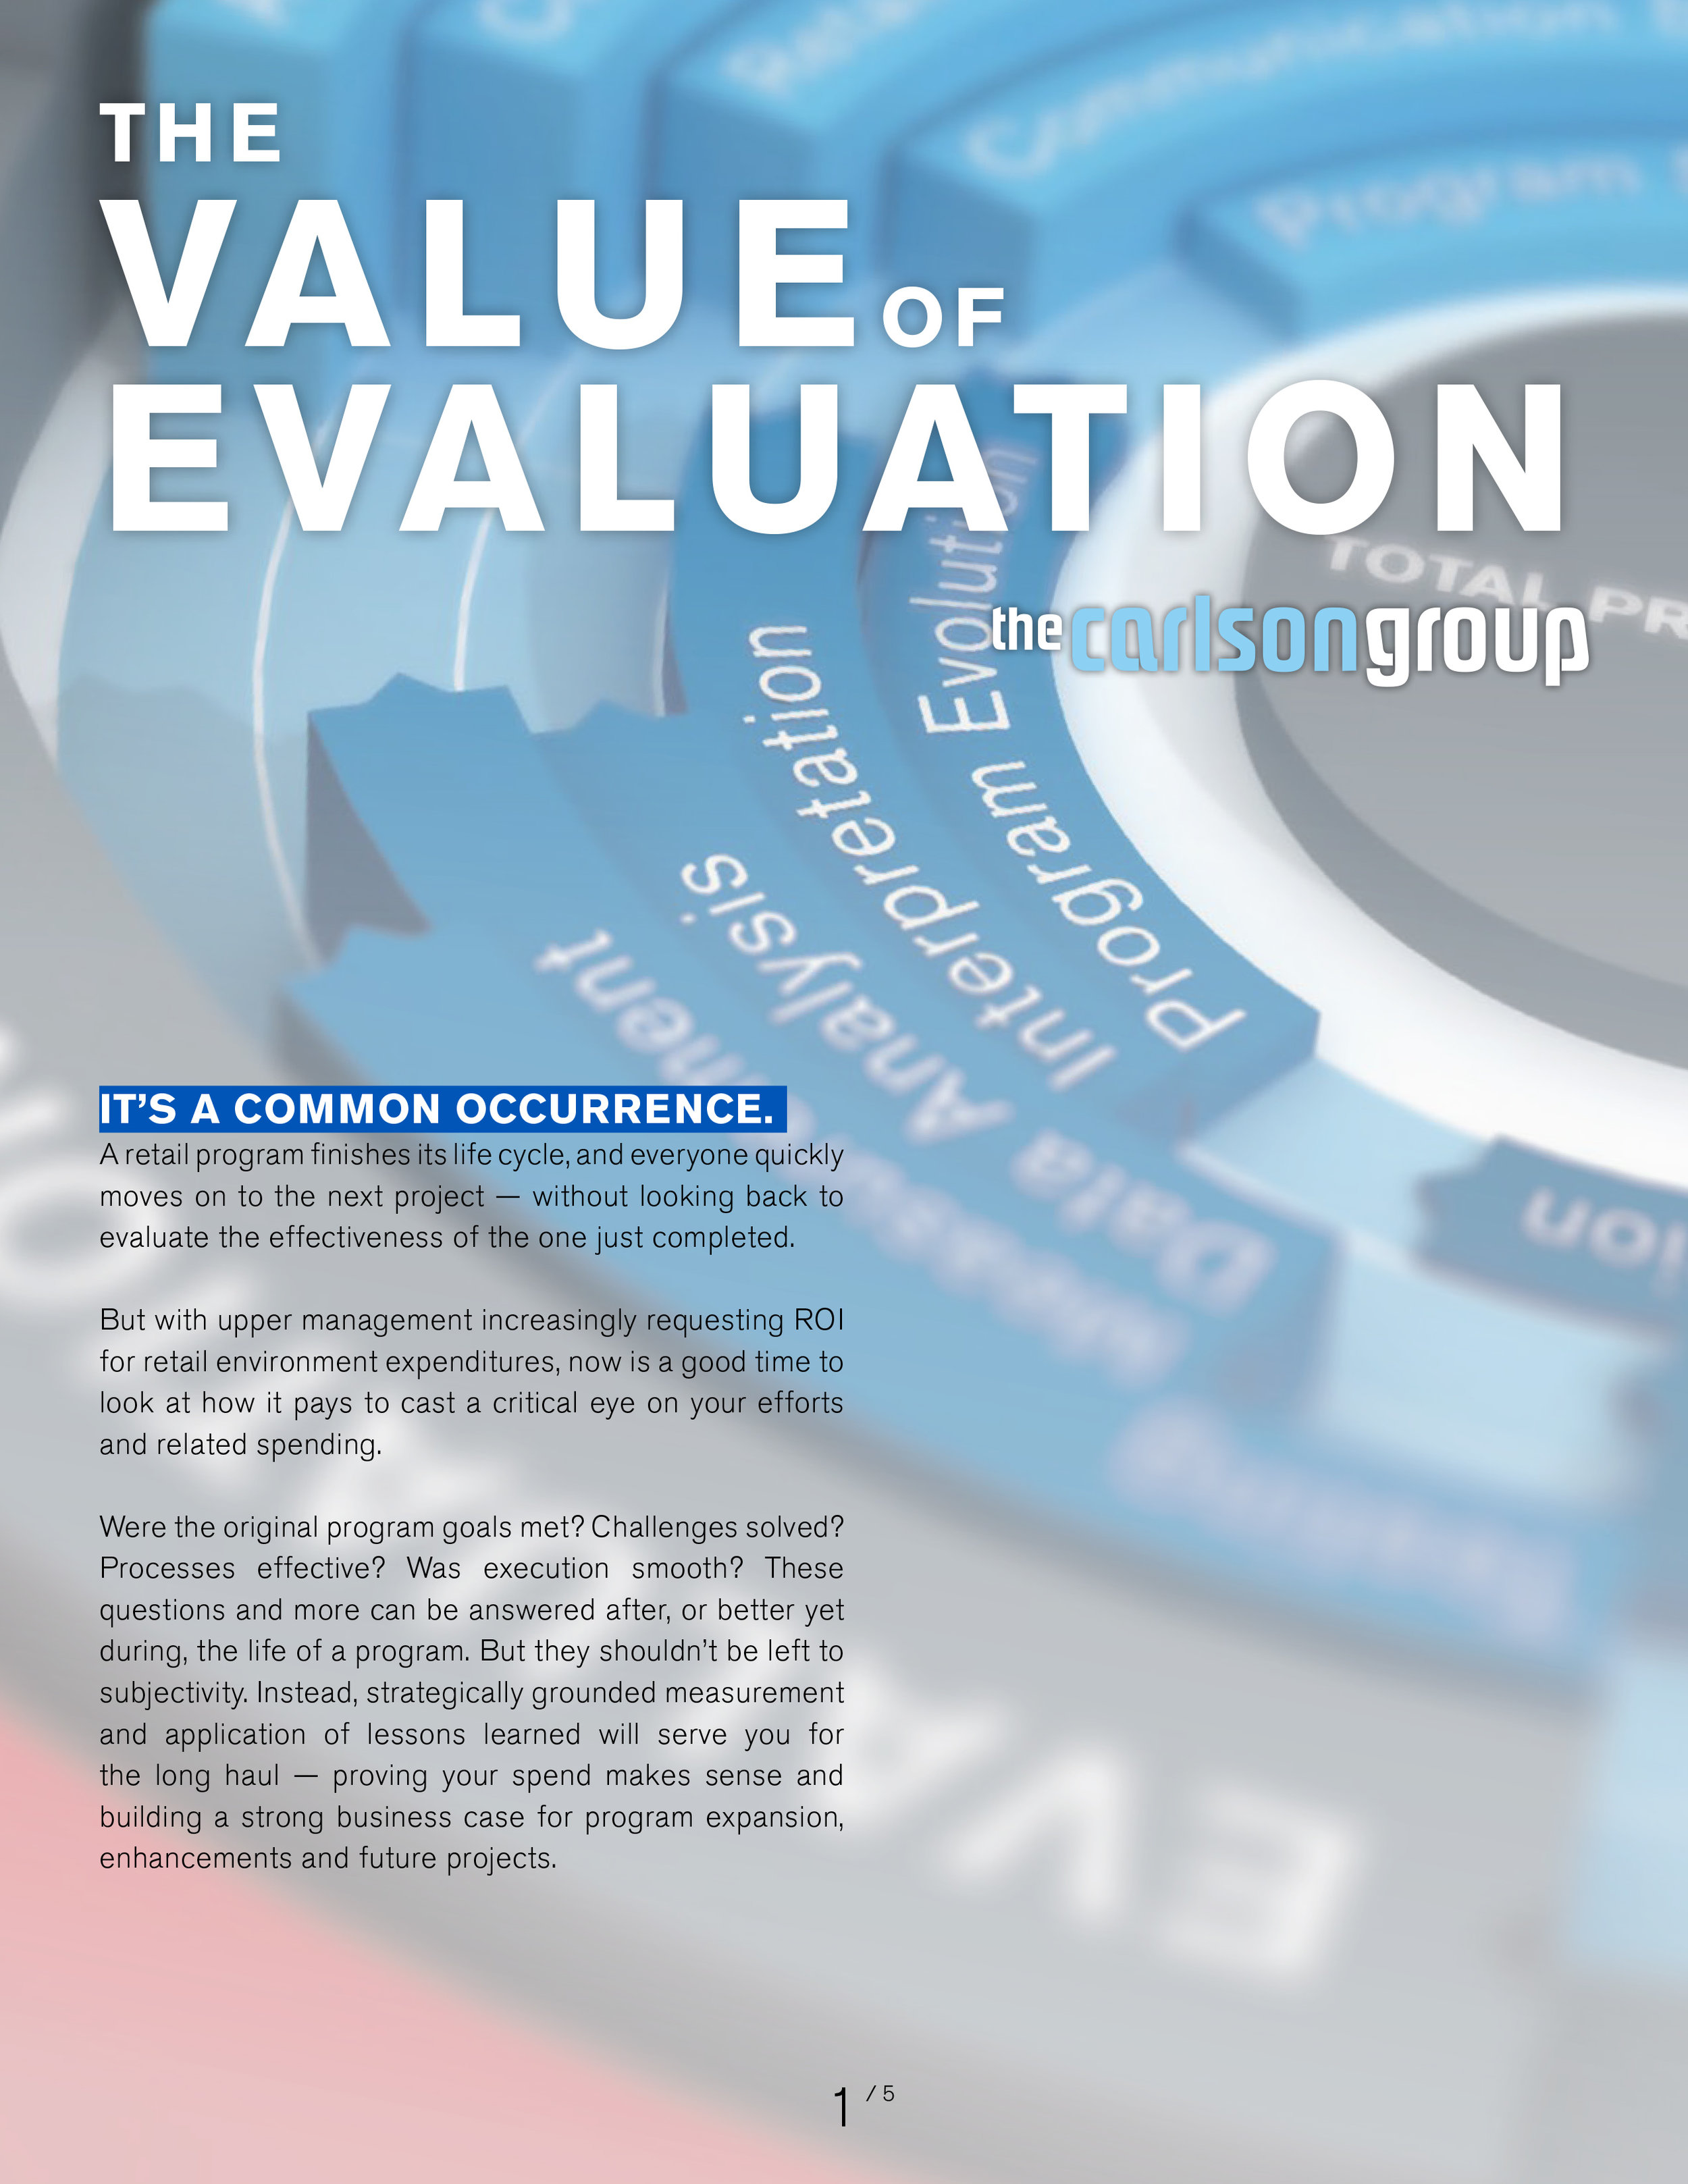 THE VALUE OF EVALUATION